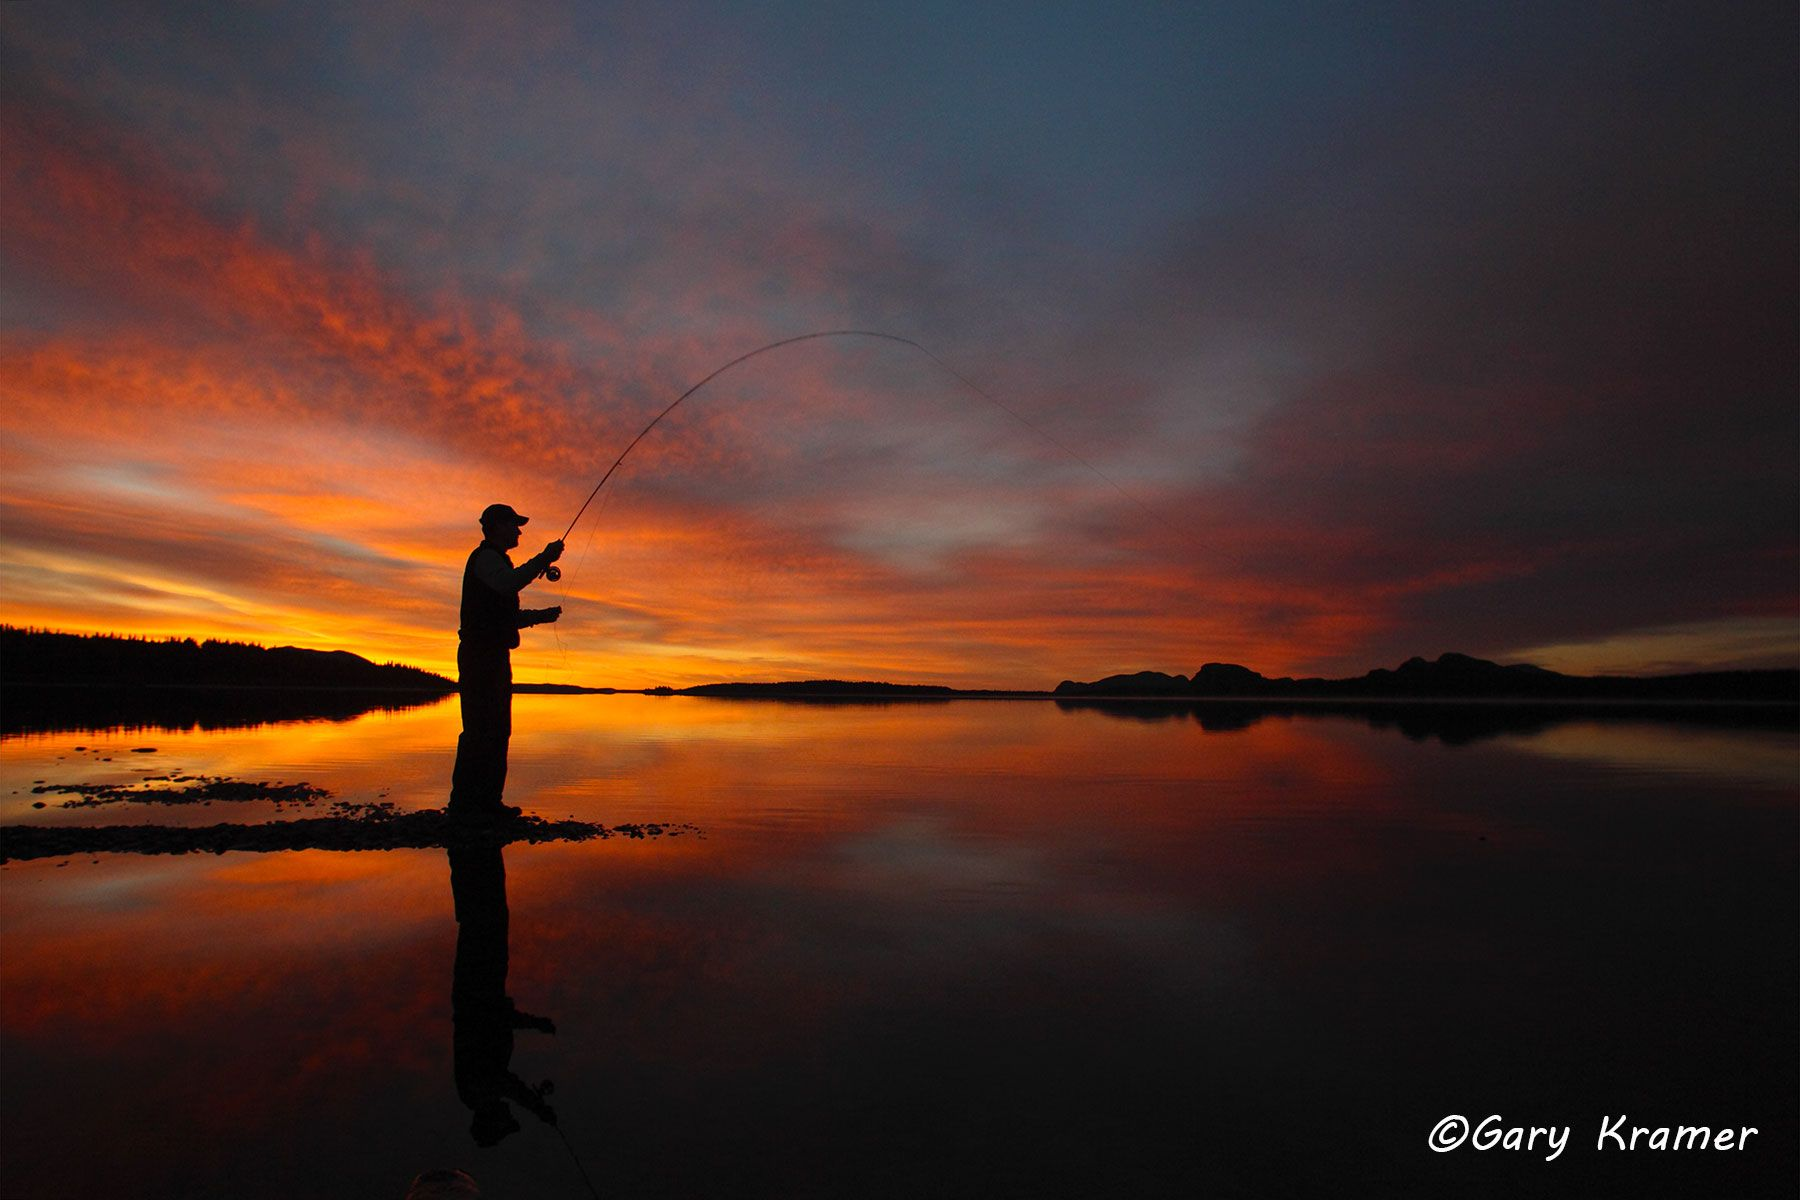 Fly Fisherman at Sunrise/Sunset - GFFs#009d